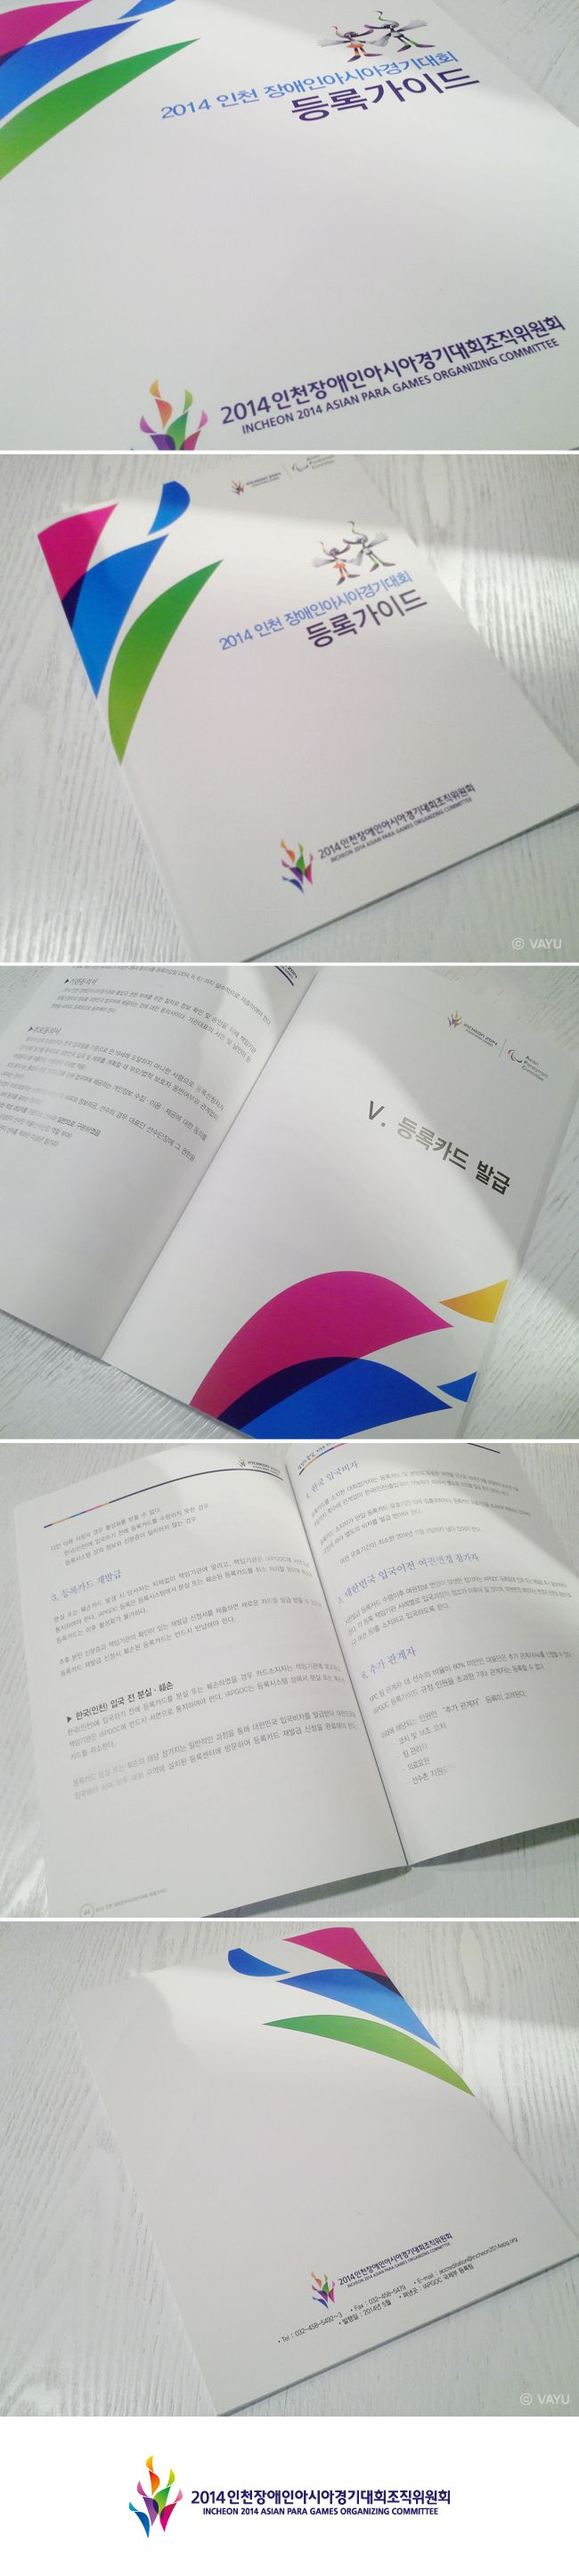 editorial design/ Client_INCHON 2014 ASIAN PARA GAMES ORGANIZIMG COMMITTEE/ vayu